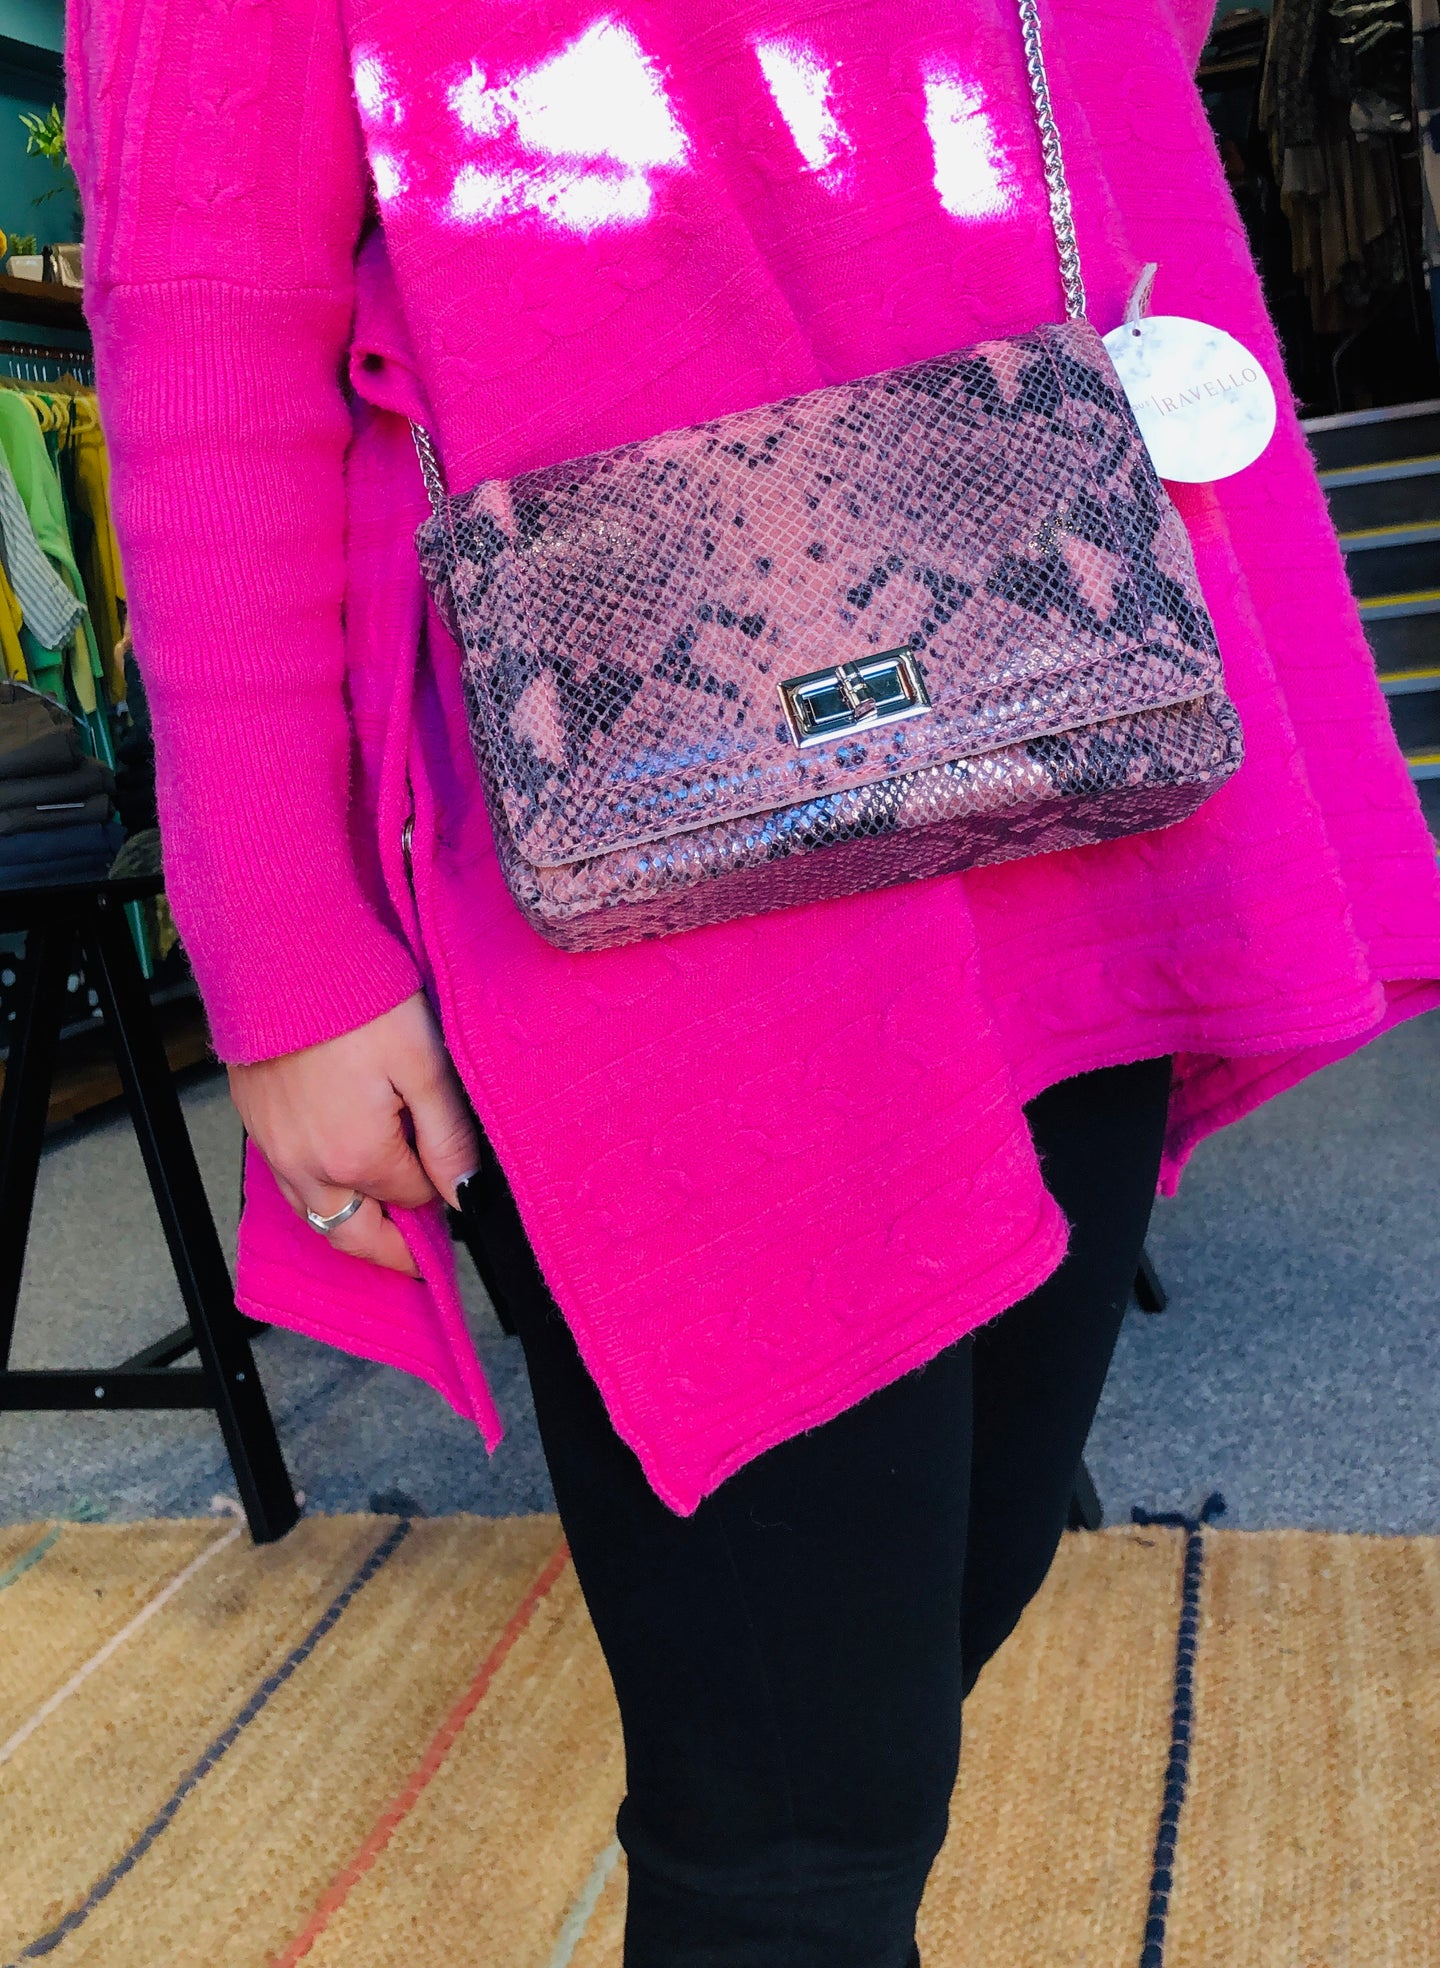 Gisella Crocodile Chain Bag